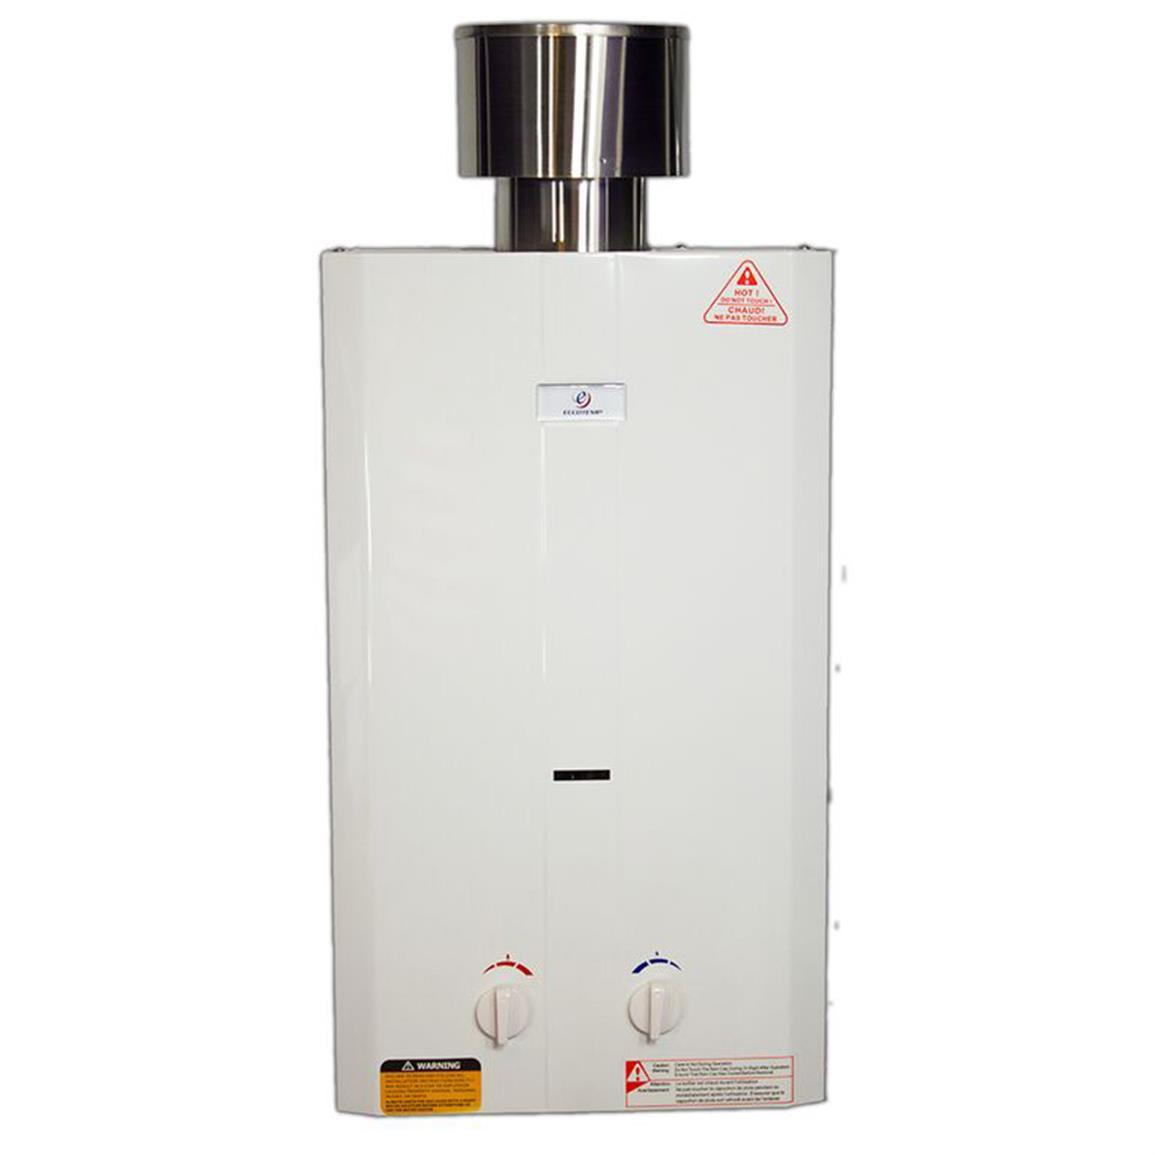 Eccotemp Systems Eccotemp L10 Tankless Water Heater with ...